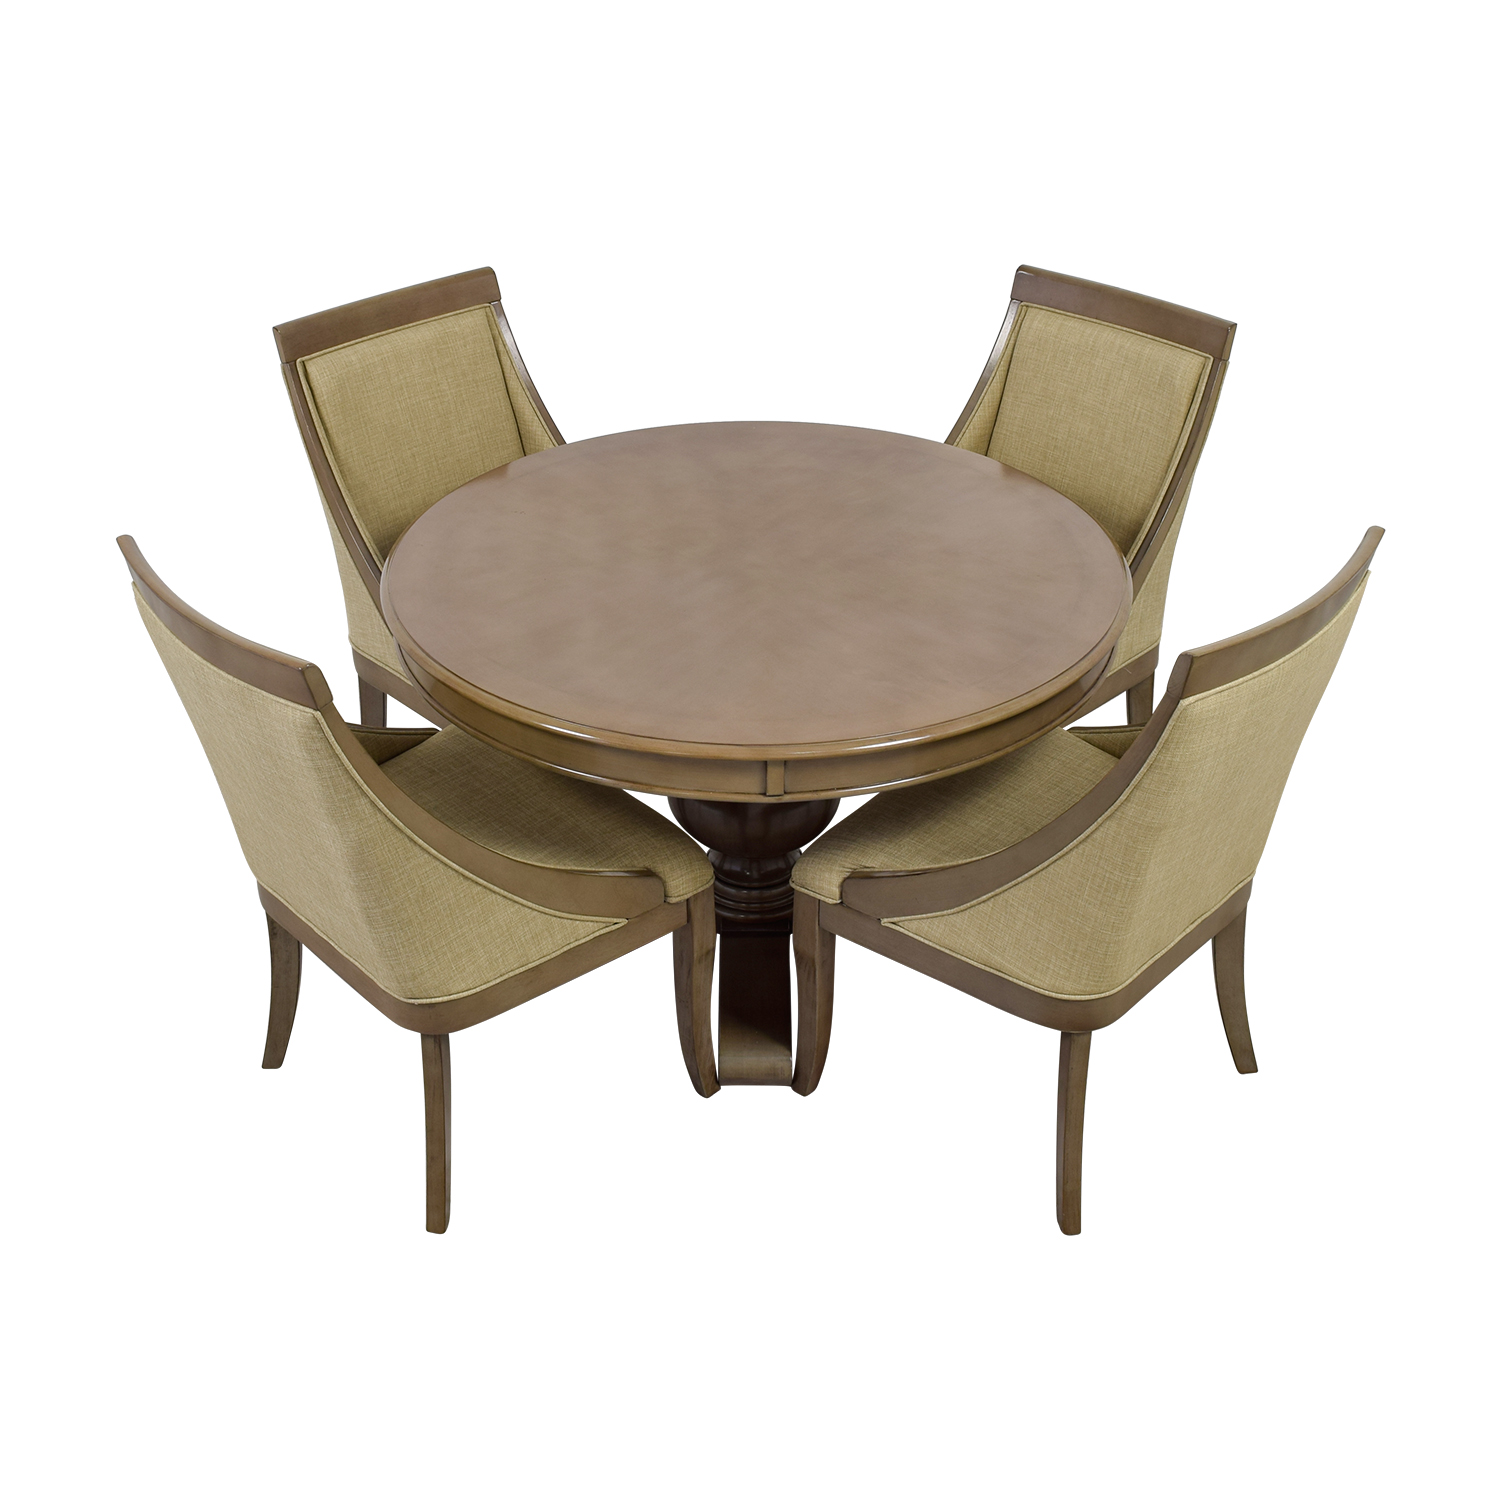 Bob's Furniture Gatsby Round Dining Set with Swoop Chairs sale